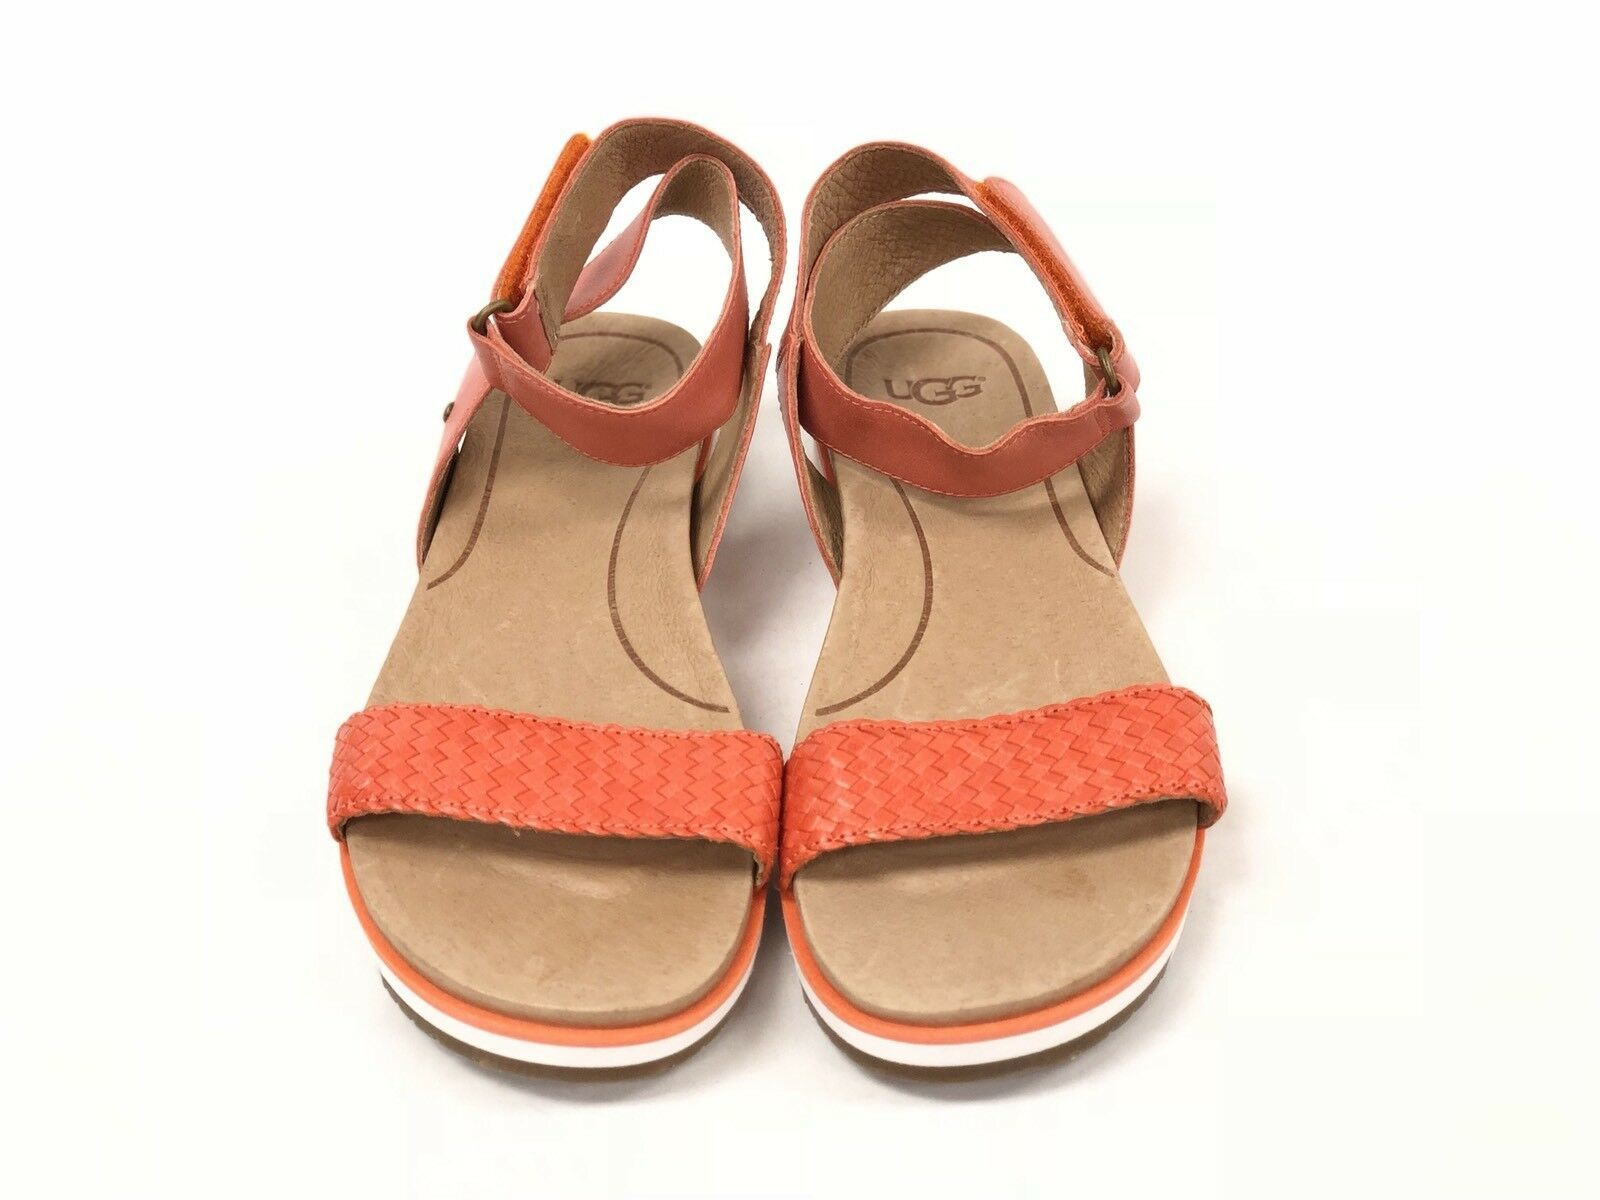 Ugg Australia Laddie Women's Ankle Strap Fire Opal Orange Sandal 1015669 Shoes image 6